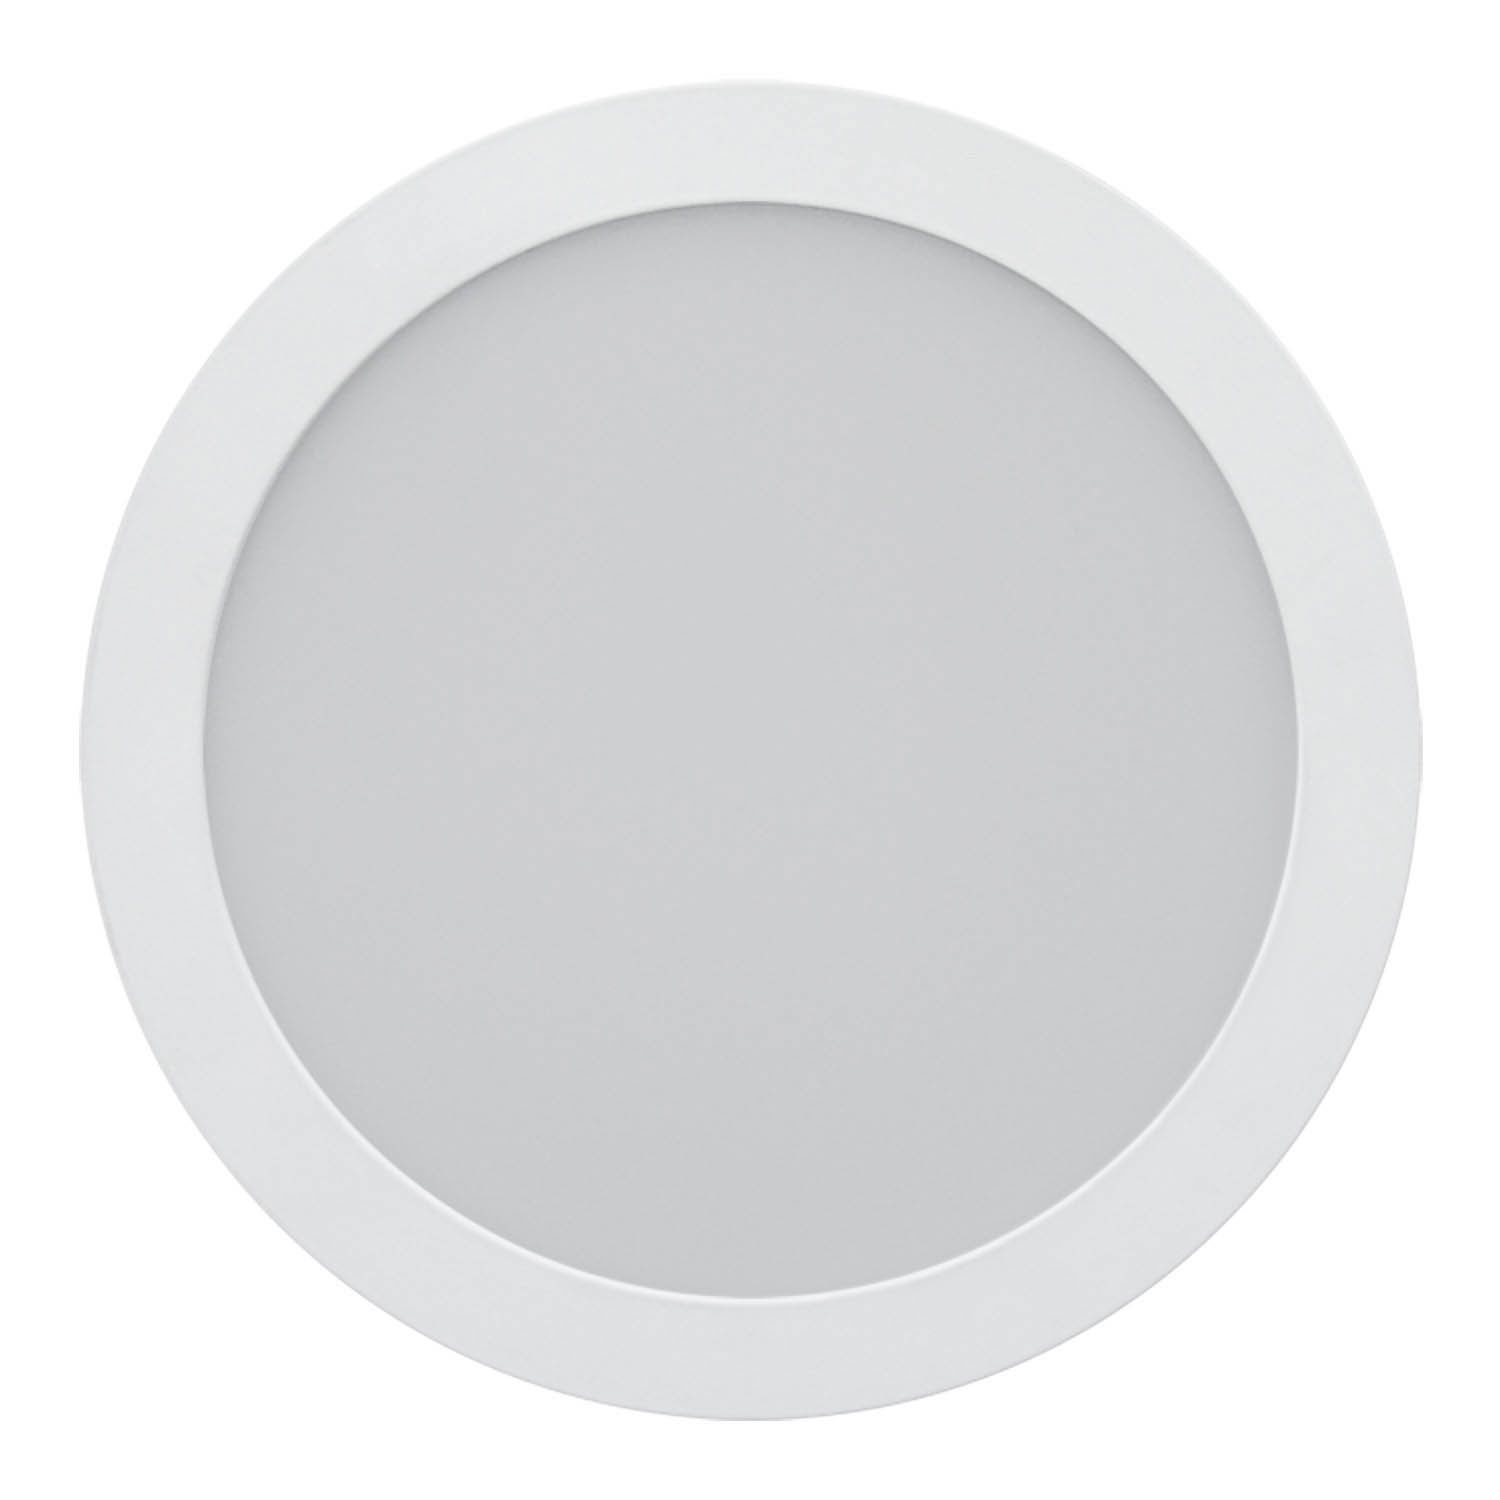 Downlight led 20w downlights superficie - Downlight cocina led ...